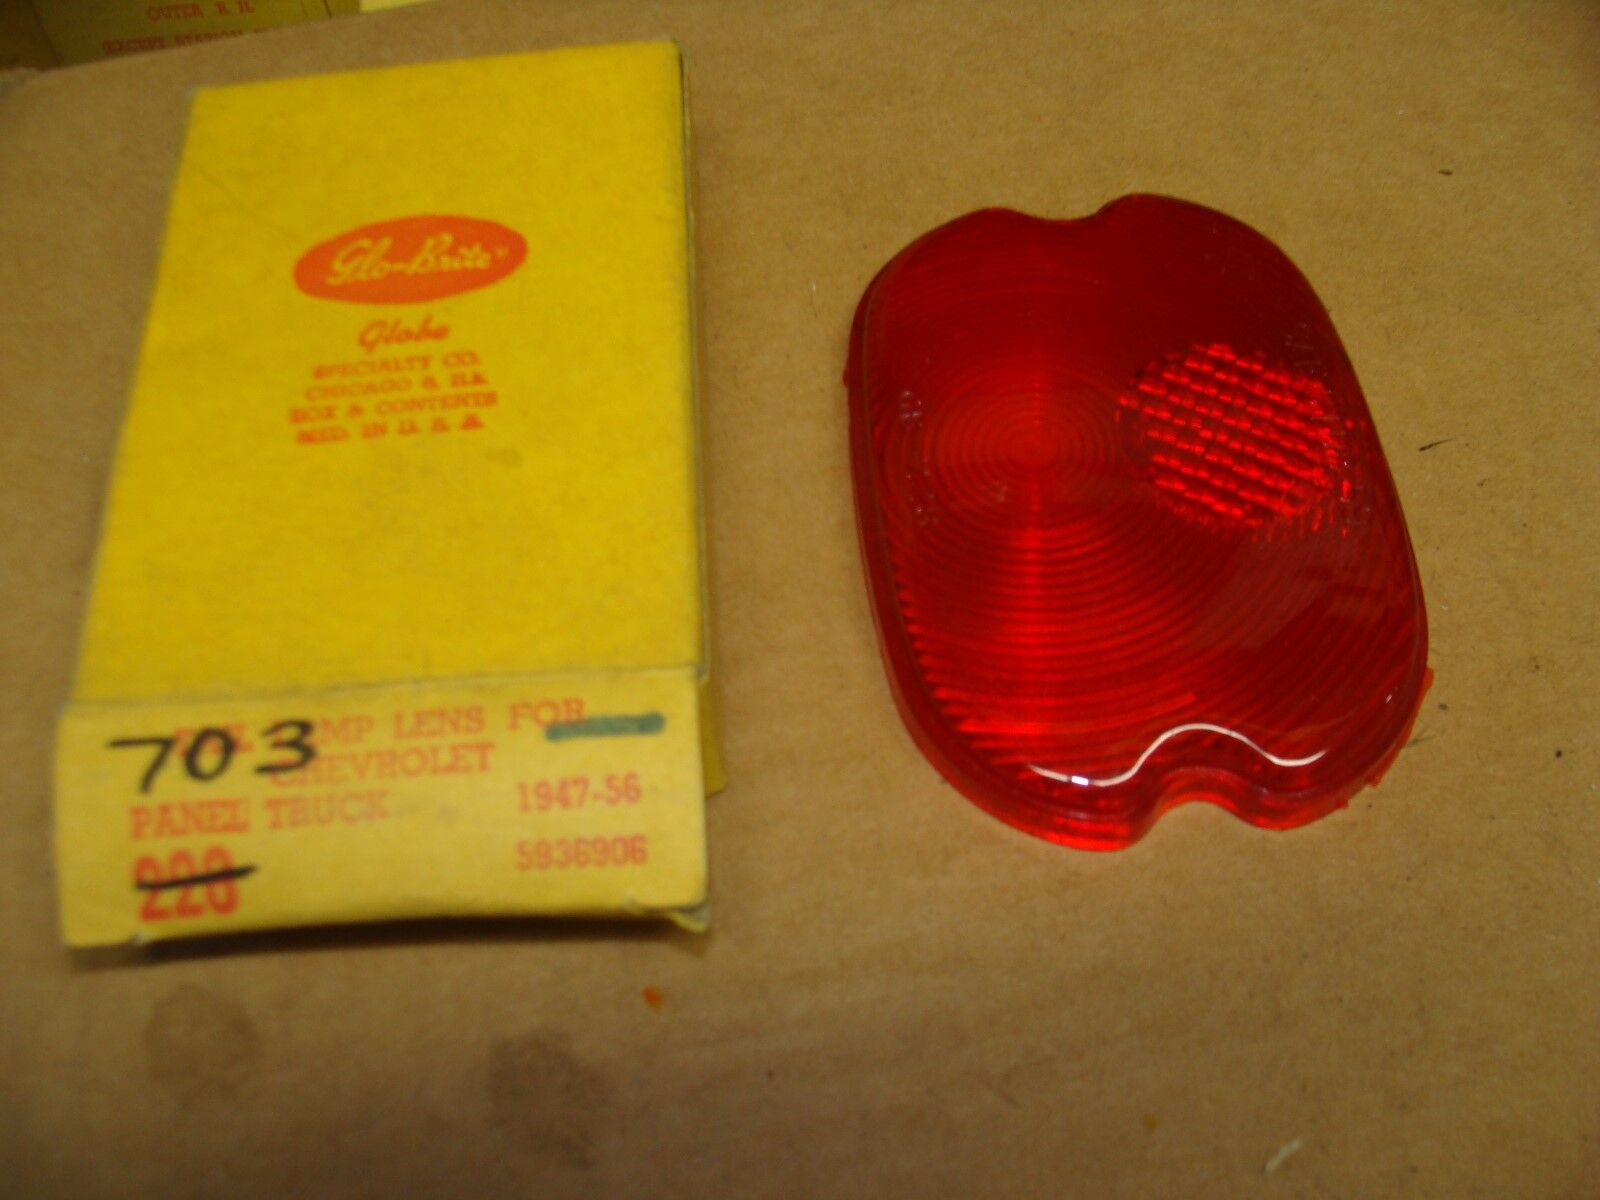 1947-1956 Chevy NORS panel truck tail light lens  703  Q-3